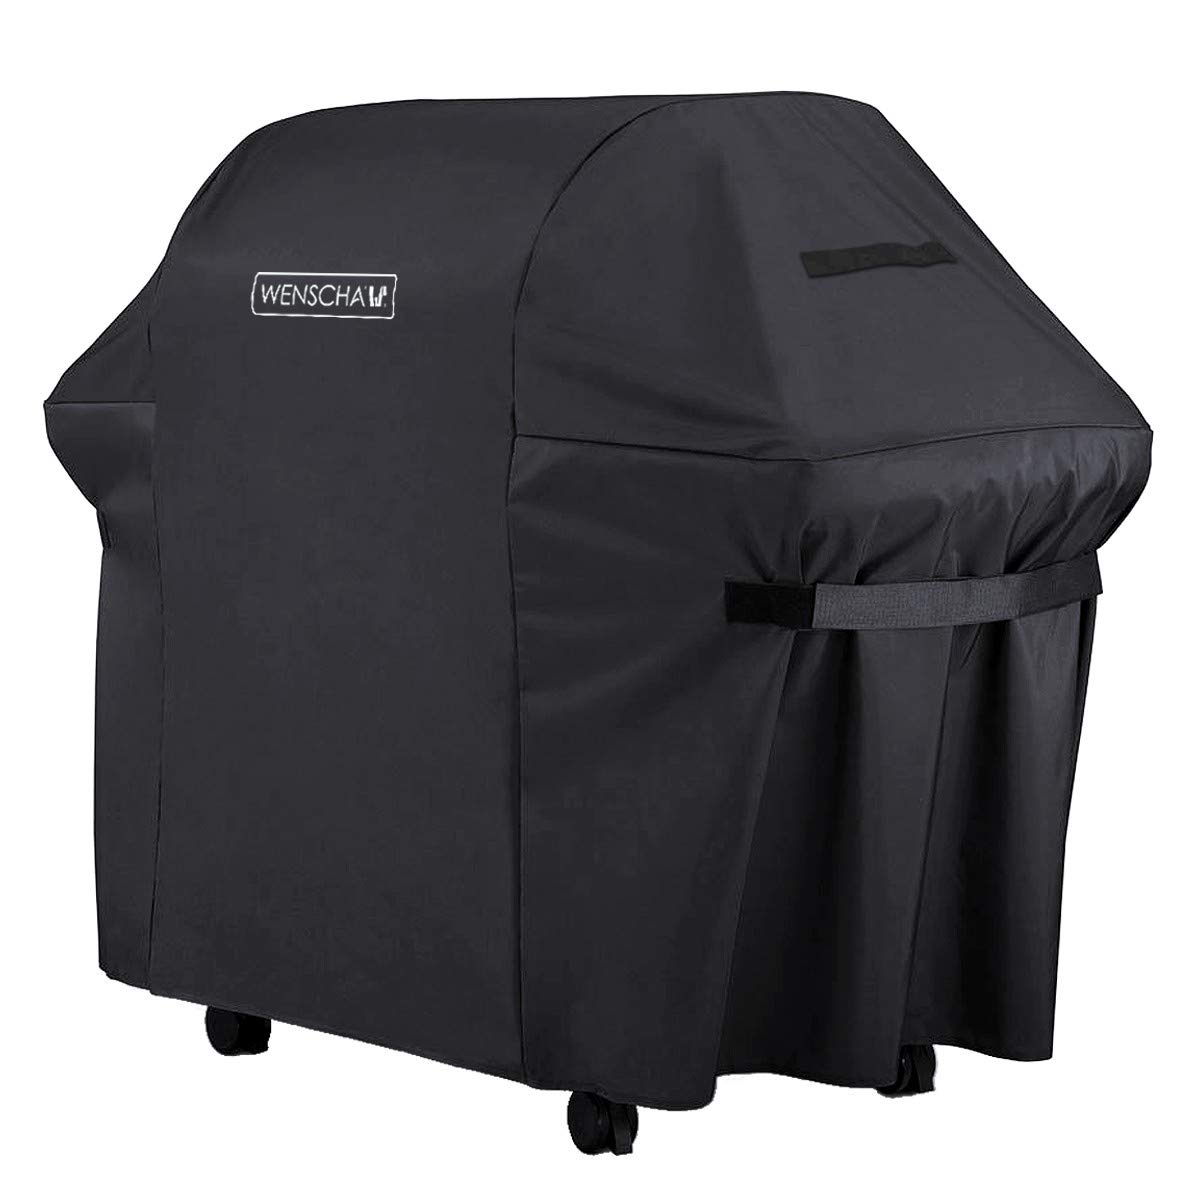 Wenscha (58 Inch) BBQ Grill Cover, 600D Heavy Duty Premium Gas Grill Cover, Fully Waterproof, UV & Fade & Rip Resistant, 58x24x48 Inches, Fits Most Brands of Grill - Black by Wenshca